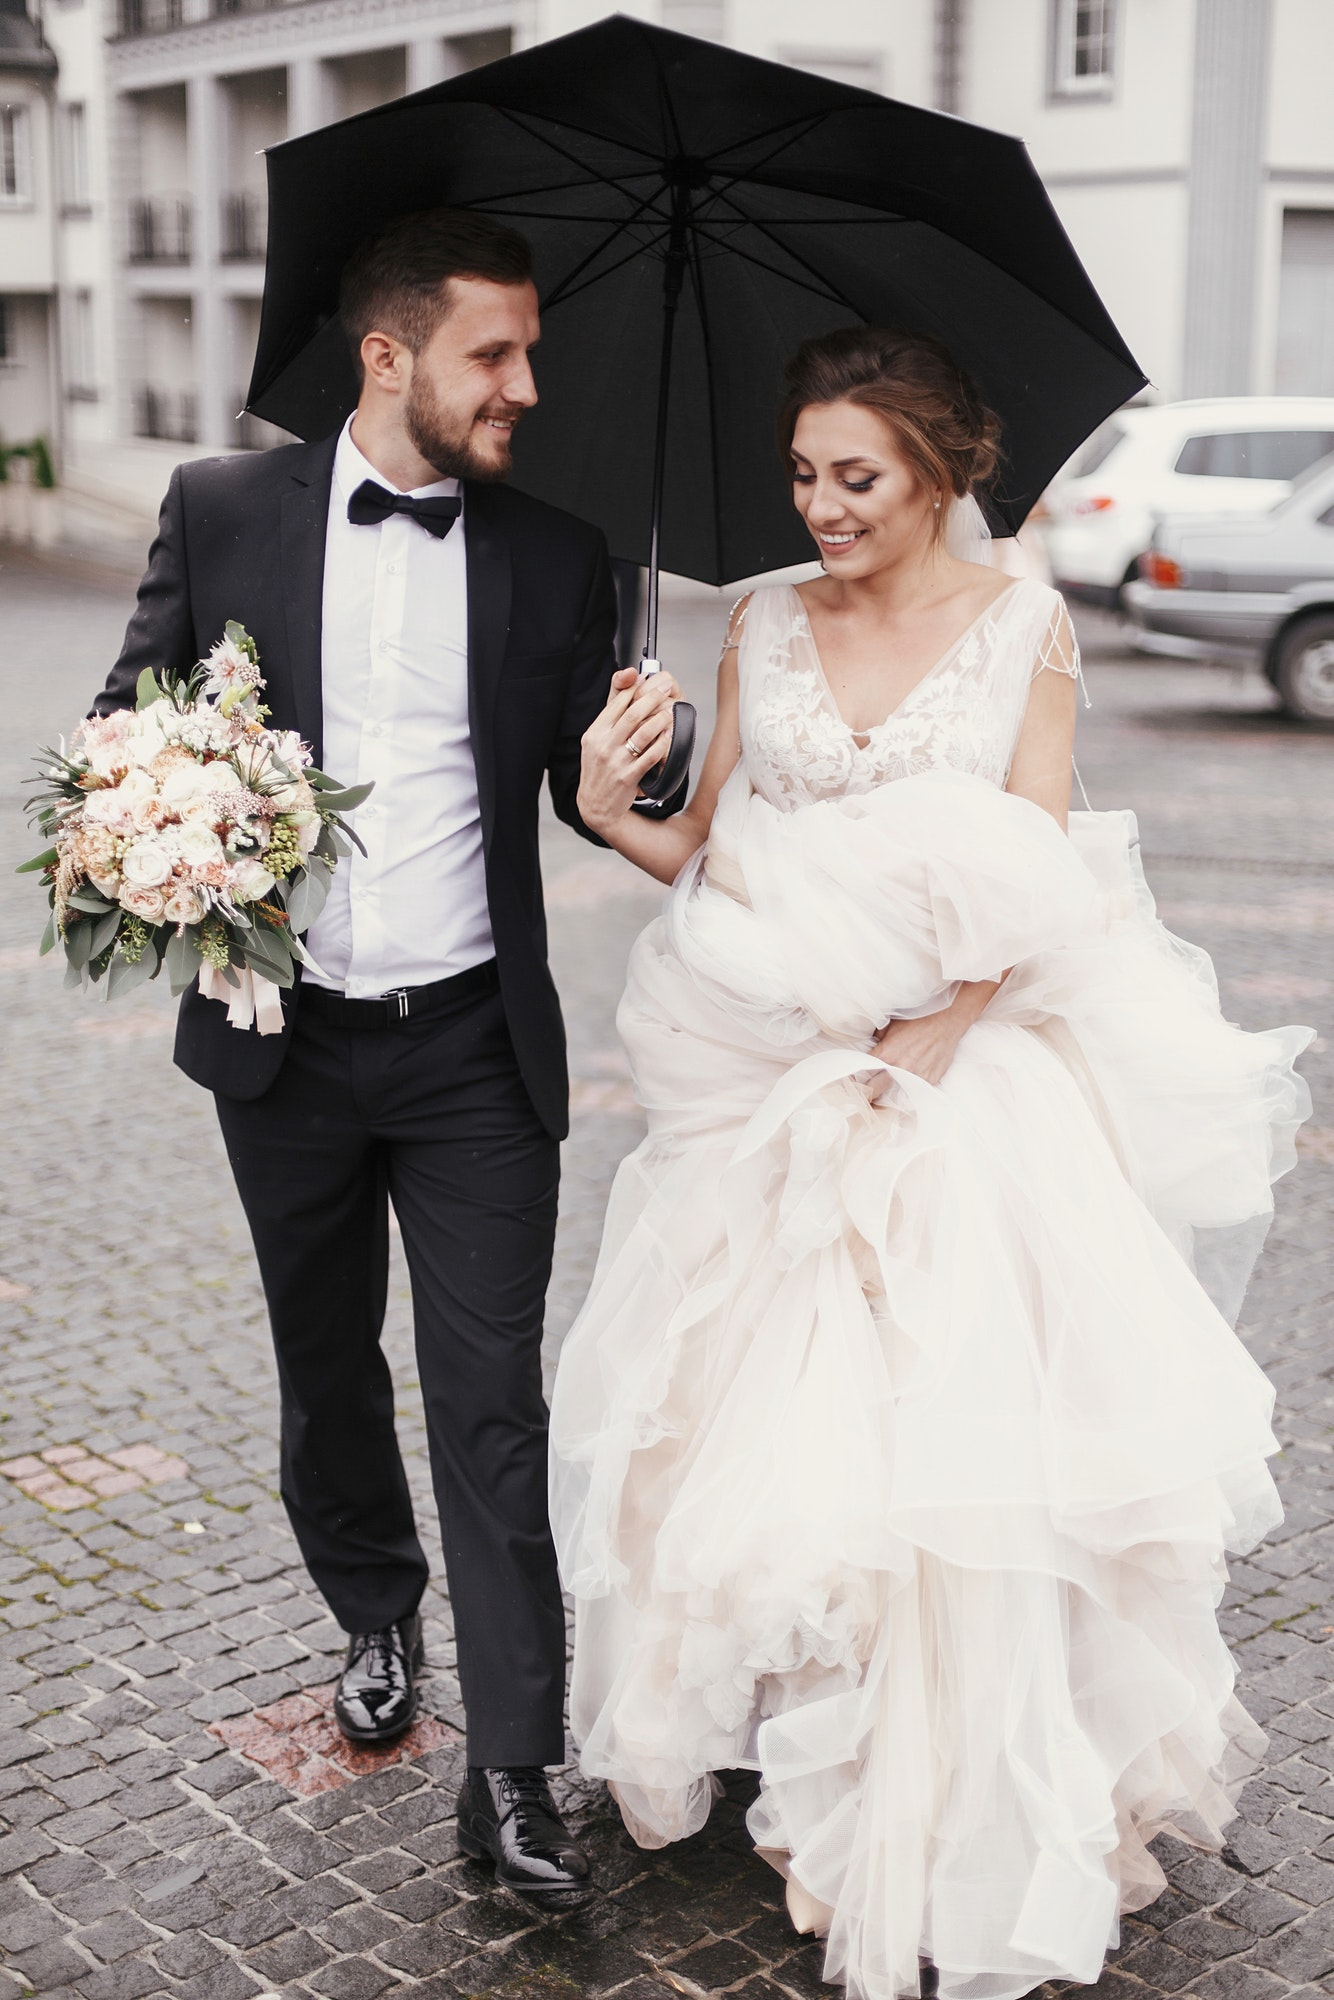 Gorgeous bride and stylish groom walking under umbrella in rainy street and smiling